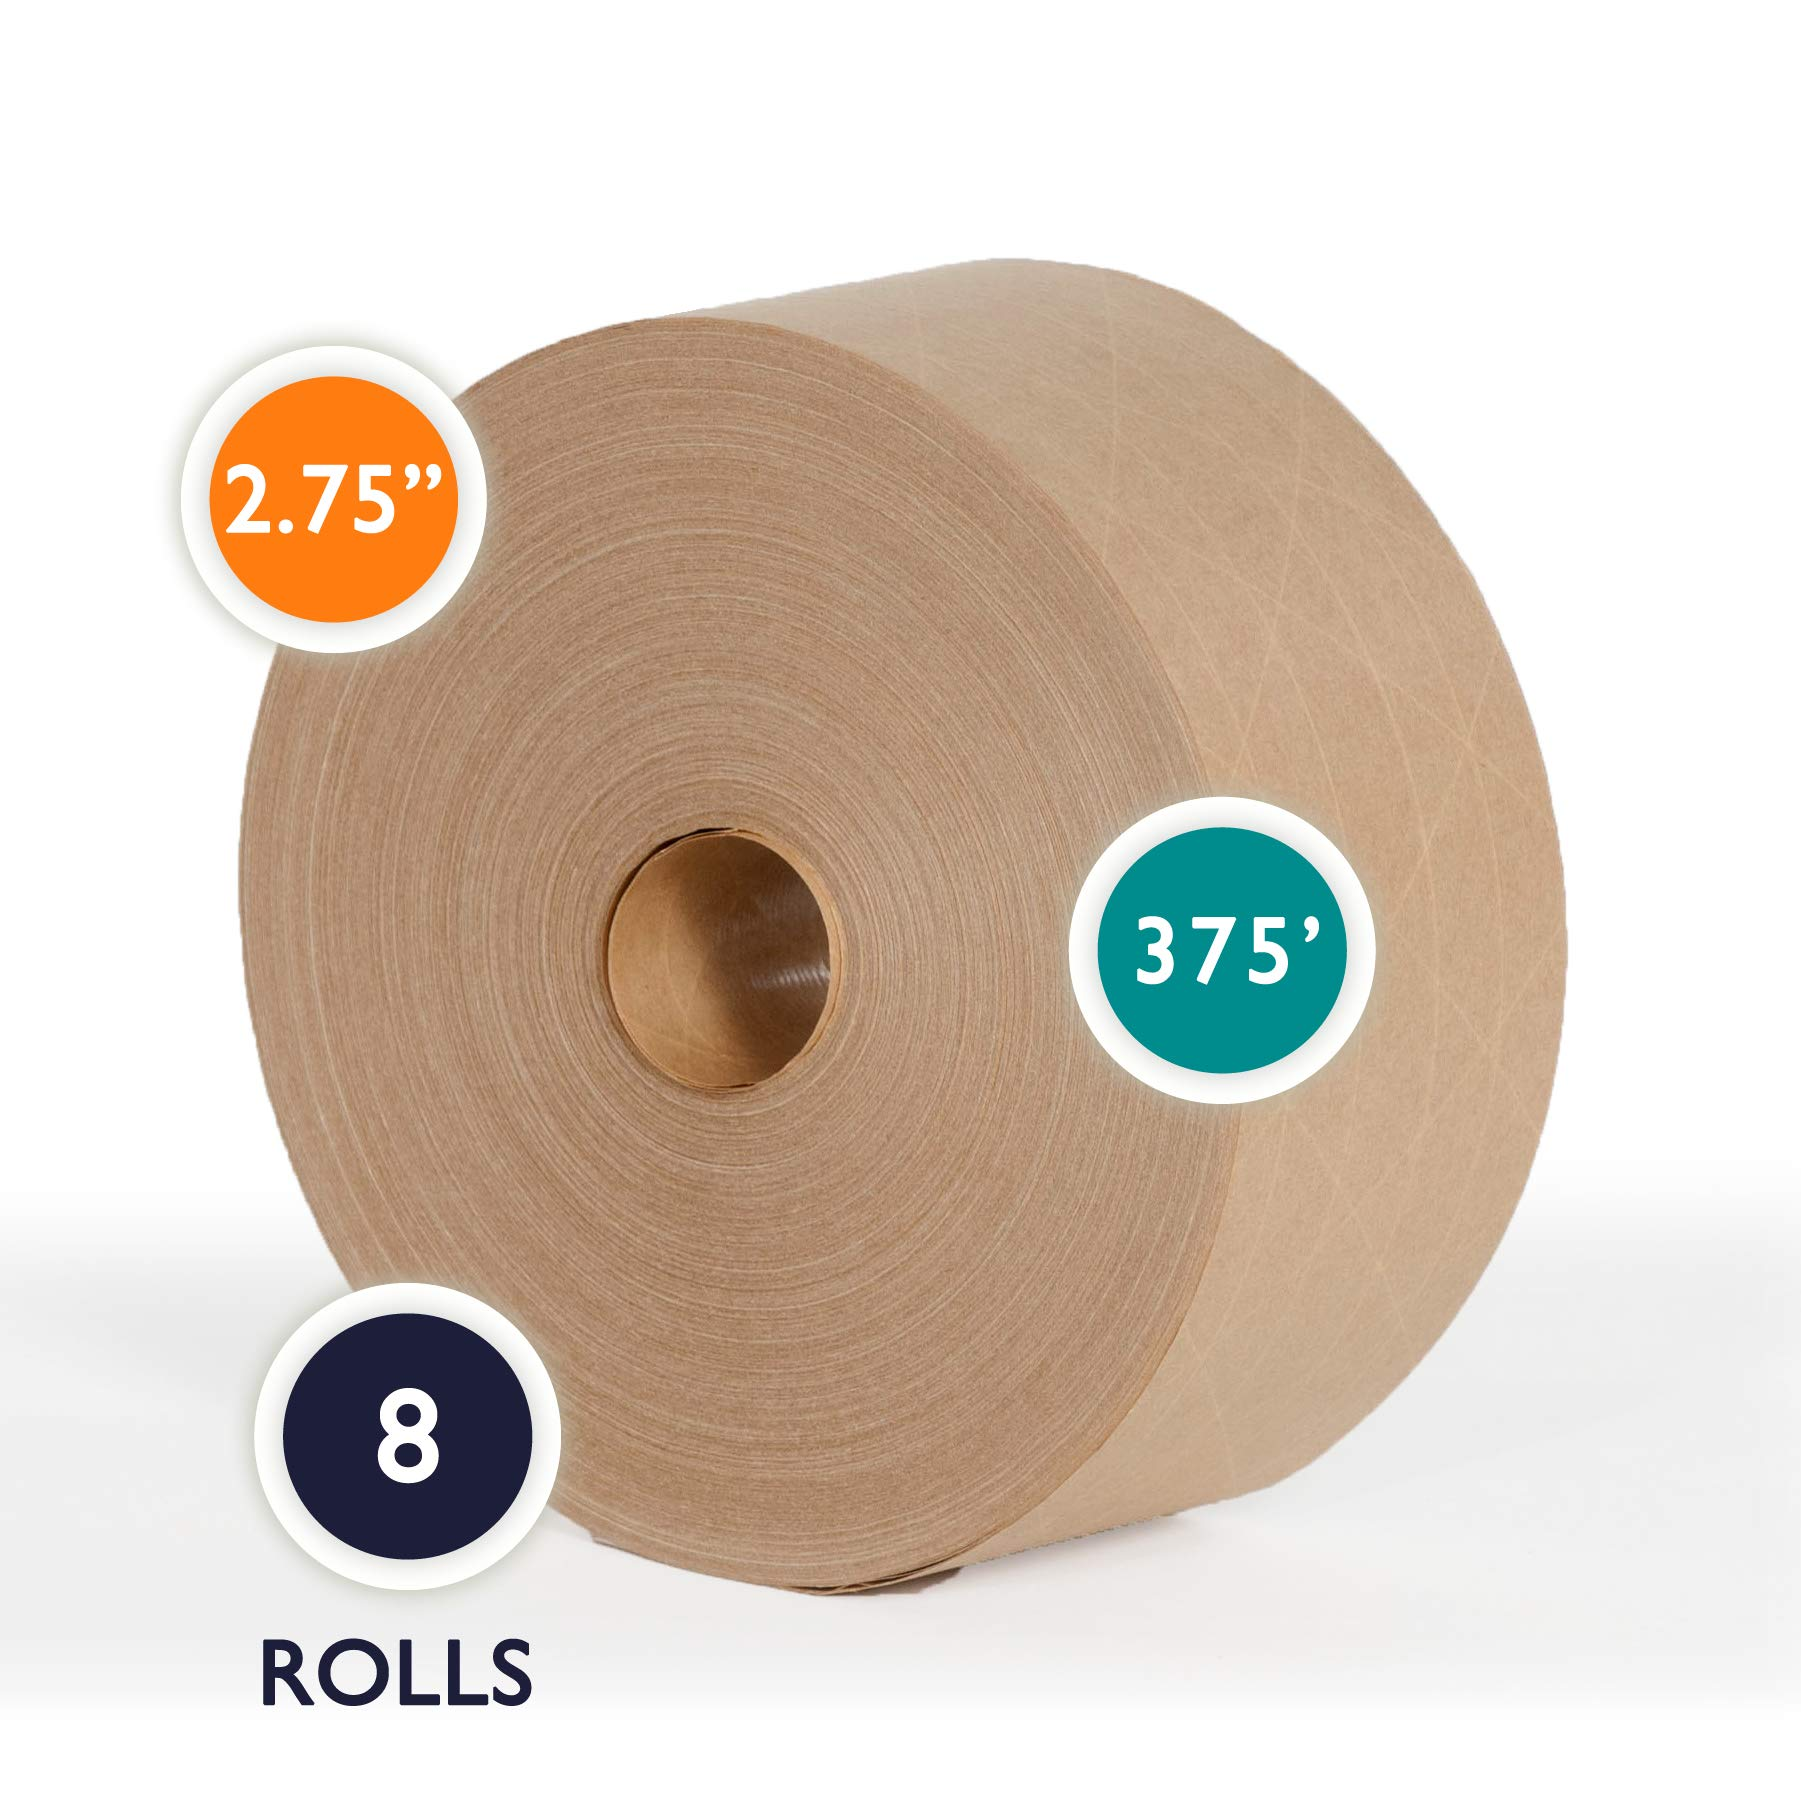 2.75'' x 375 Ft Reinforced Gummed Kraft Paper Tape 2.75 Inch x 375 Ft Water Activated Ultra-Sticky Kraft Packaging, Case of 8 Rolls by PackageZoom